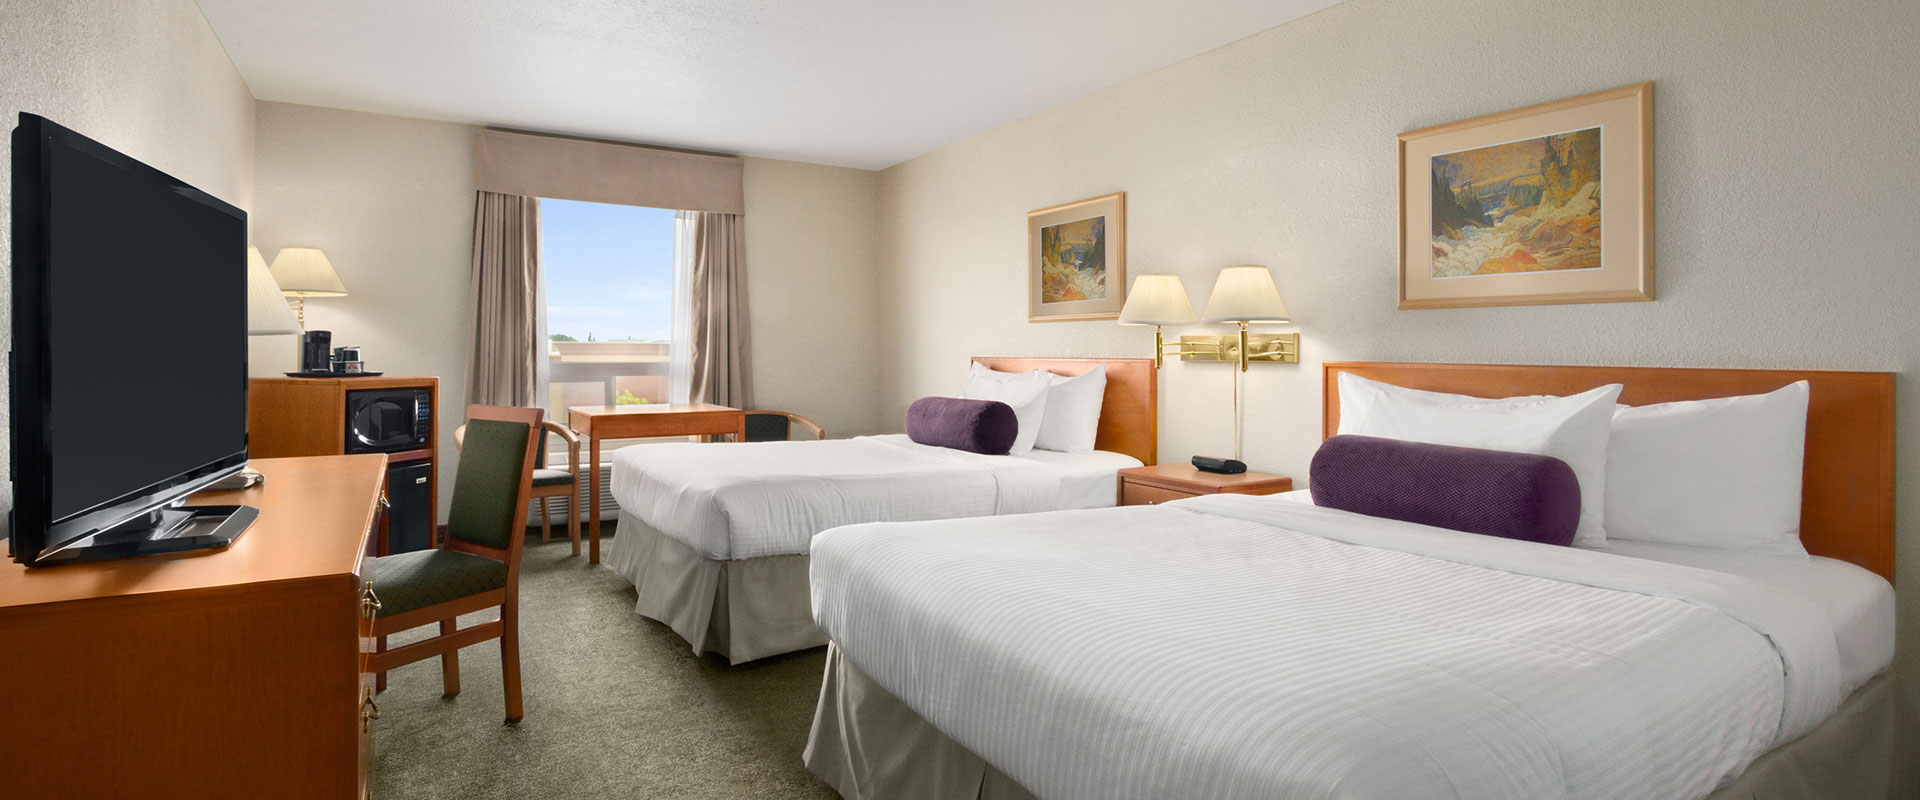 Two bed business class suite with microwave, TV, work table, lamps and chairs at Days Inn Red Deer, Alberta.